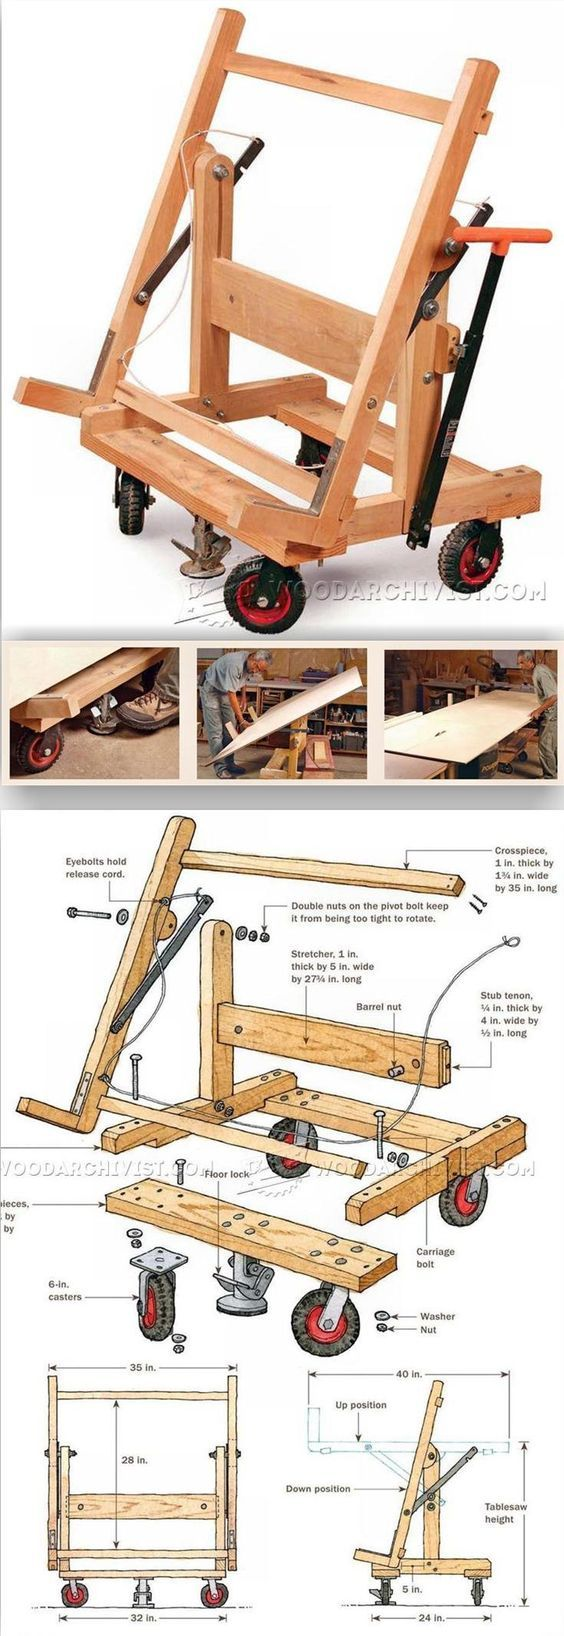 French tuteur trellis woodworking projects amp plans - Pivoting Plywood Cart Plans Workshop Solutions Projects Tips And Tricks Woodwork Woodworking Woodworking Plans Woodworking Projects